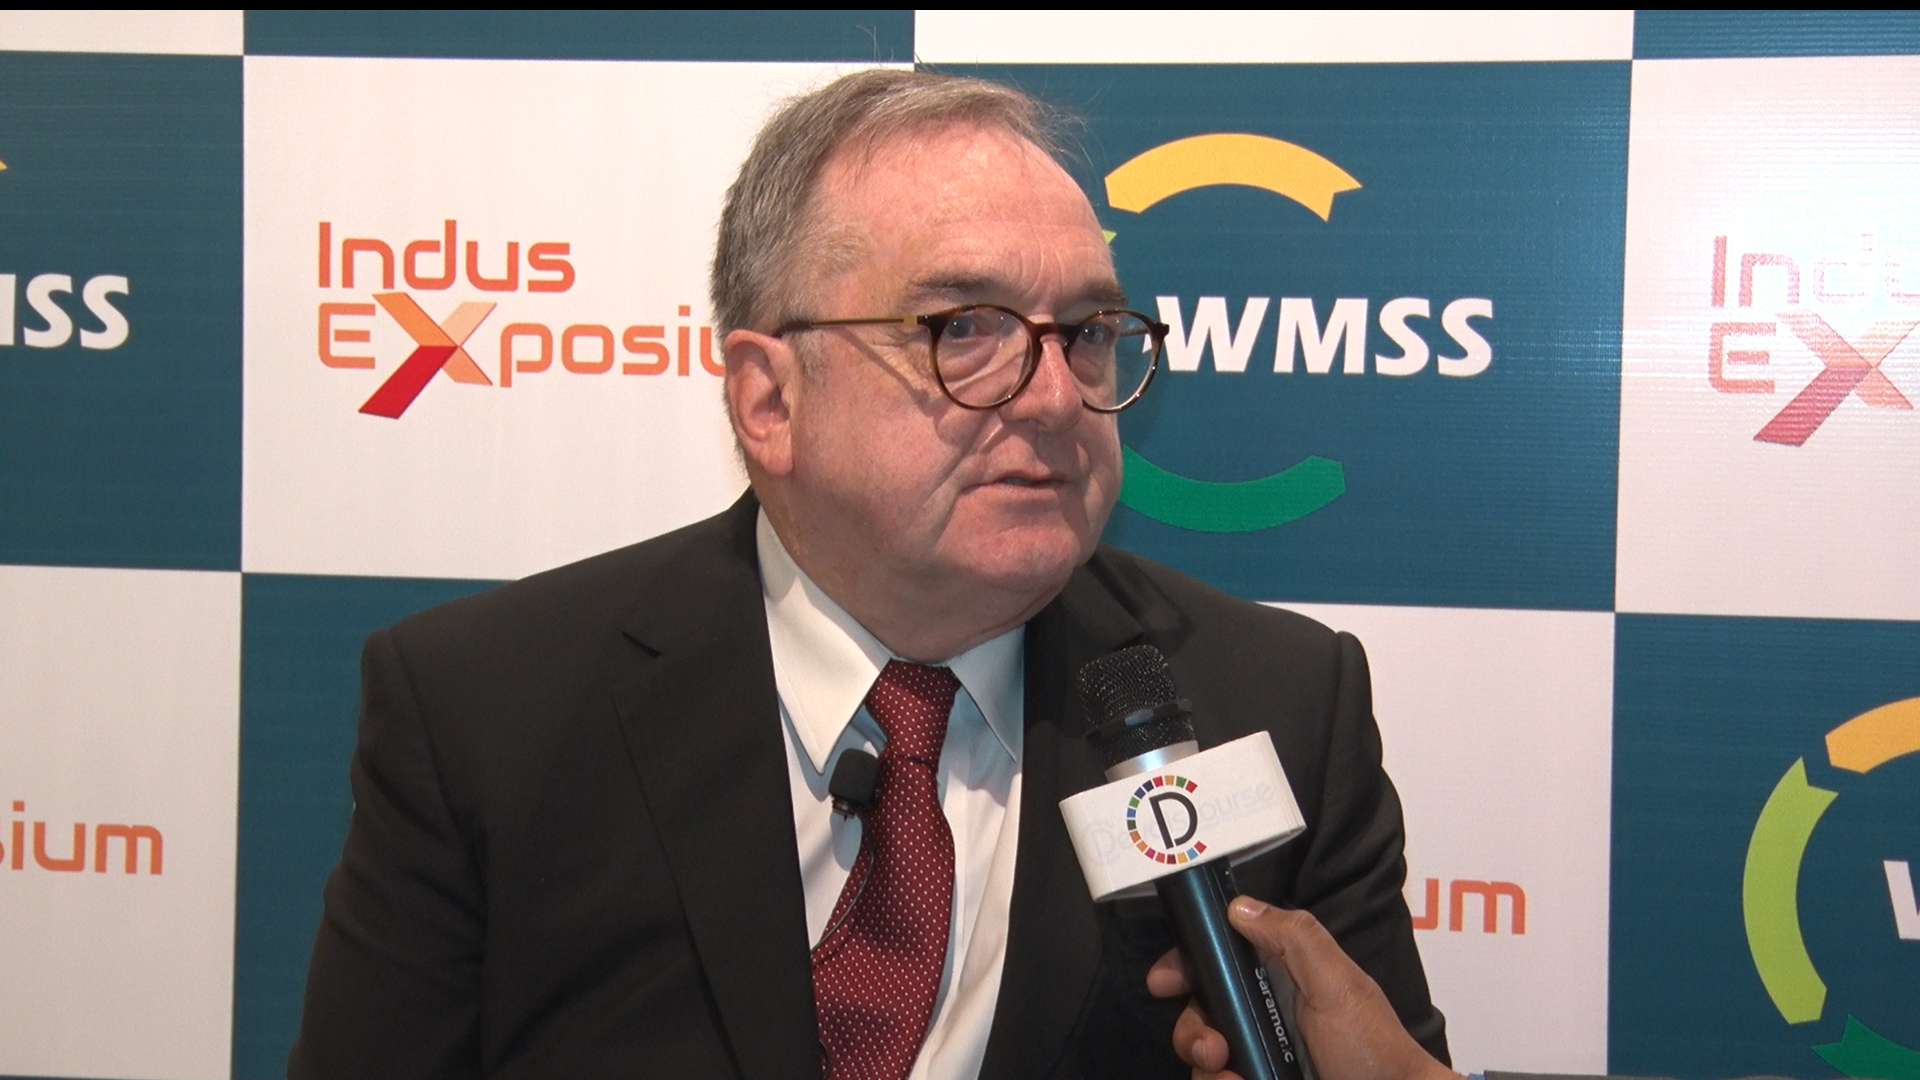 Besides superior to LPG, biogas has huge job opportunities: Kevin Houston